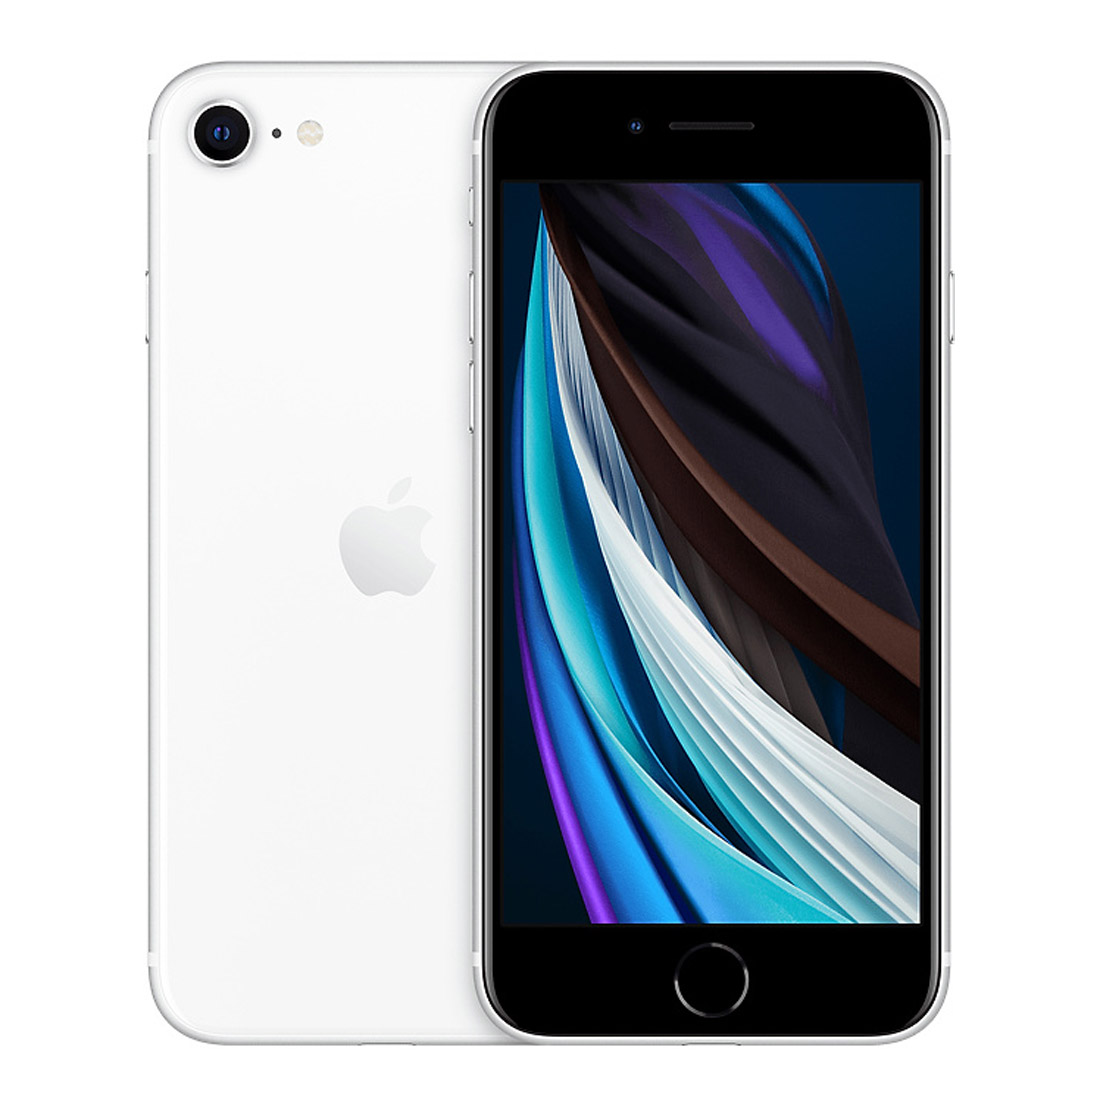 Apple iPhone SE (2020, Gen 2) 64GB MX9T2X/A - White